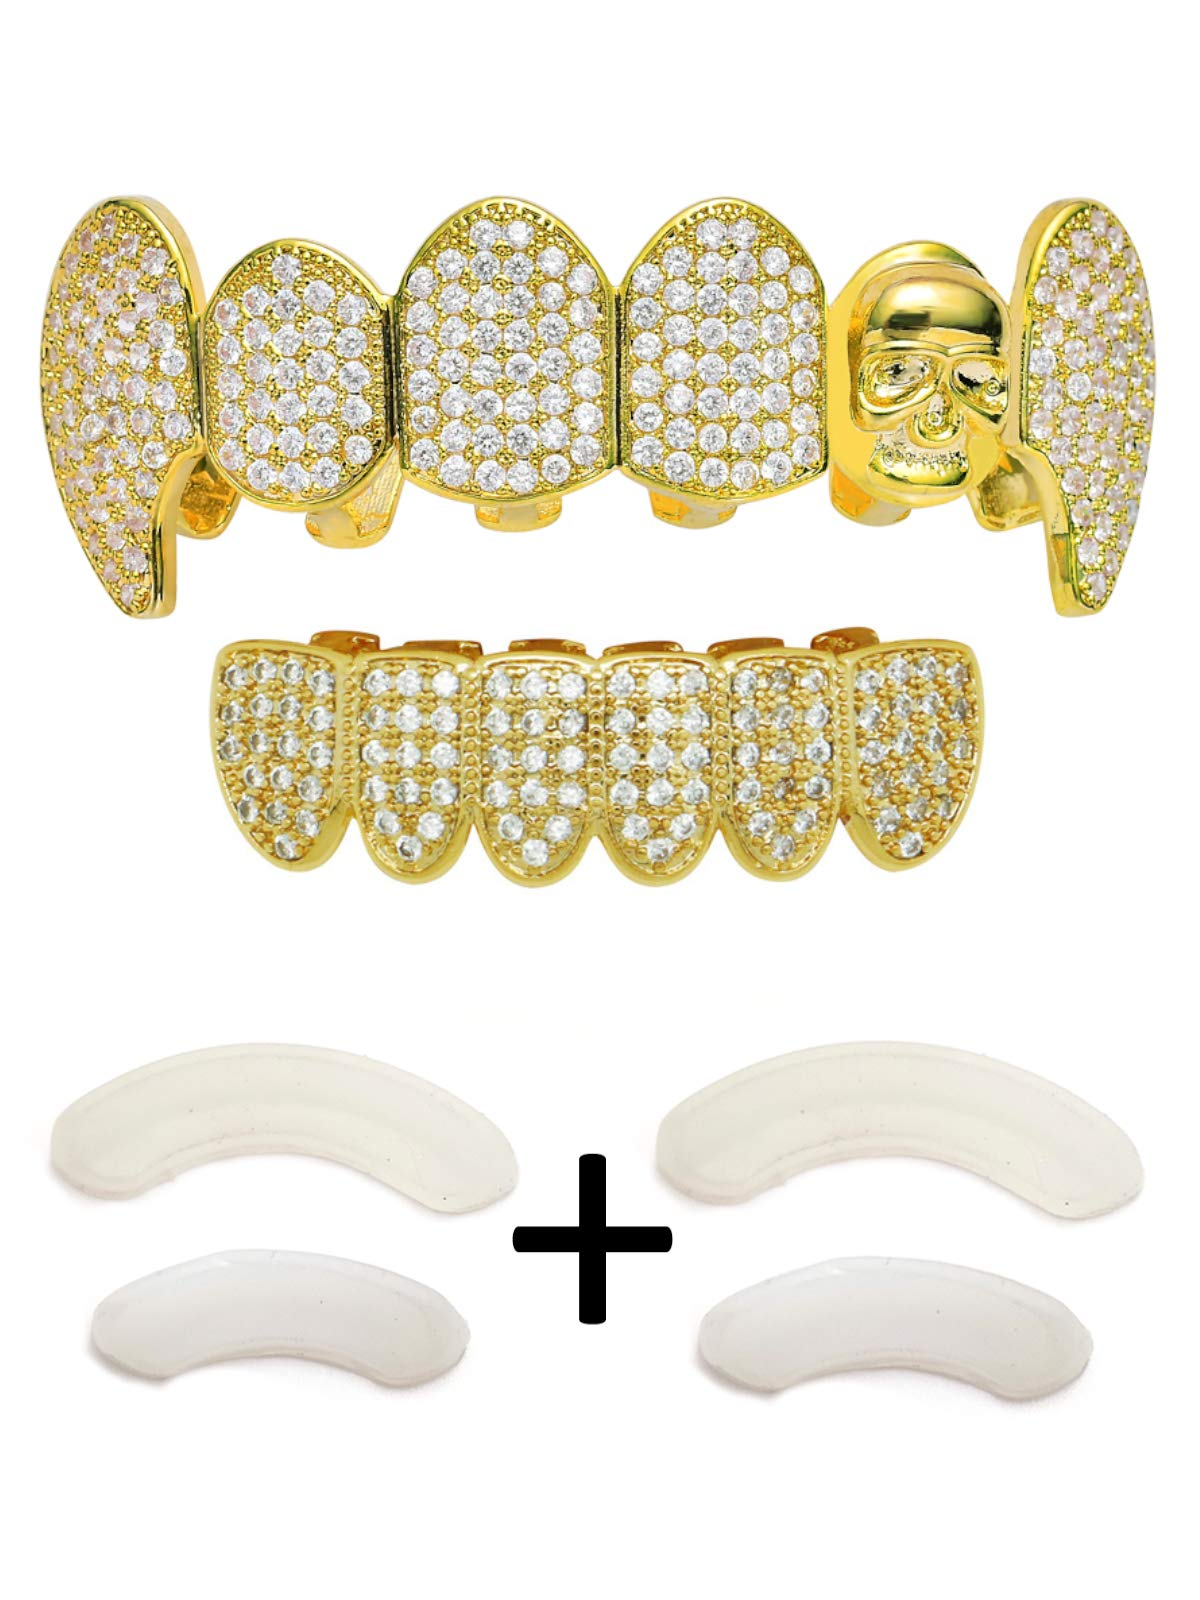 TSANLY Gold Grillz Skull Fangs Grills Iced Out CZ Diamond Top&Bottom Set Vampire Grill Hip Hop Grillz Gift + Storage Case + 2 Extra Molding Bars